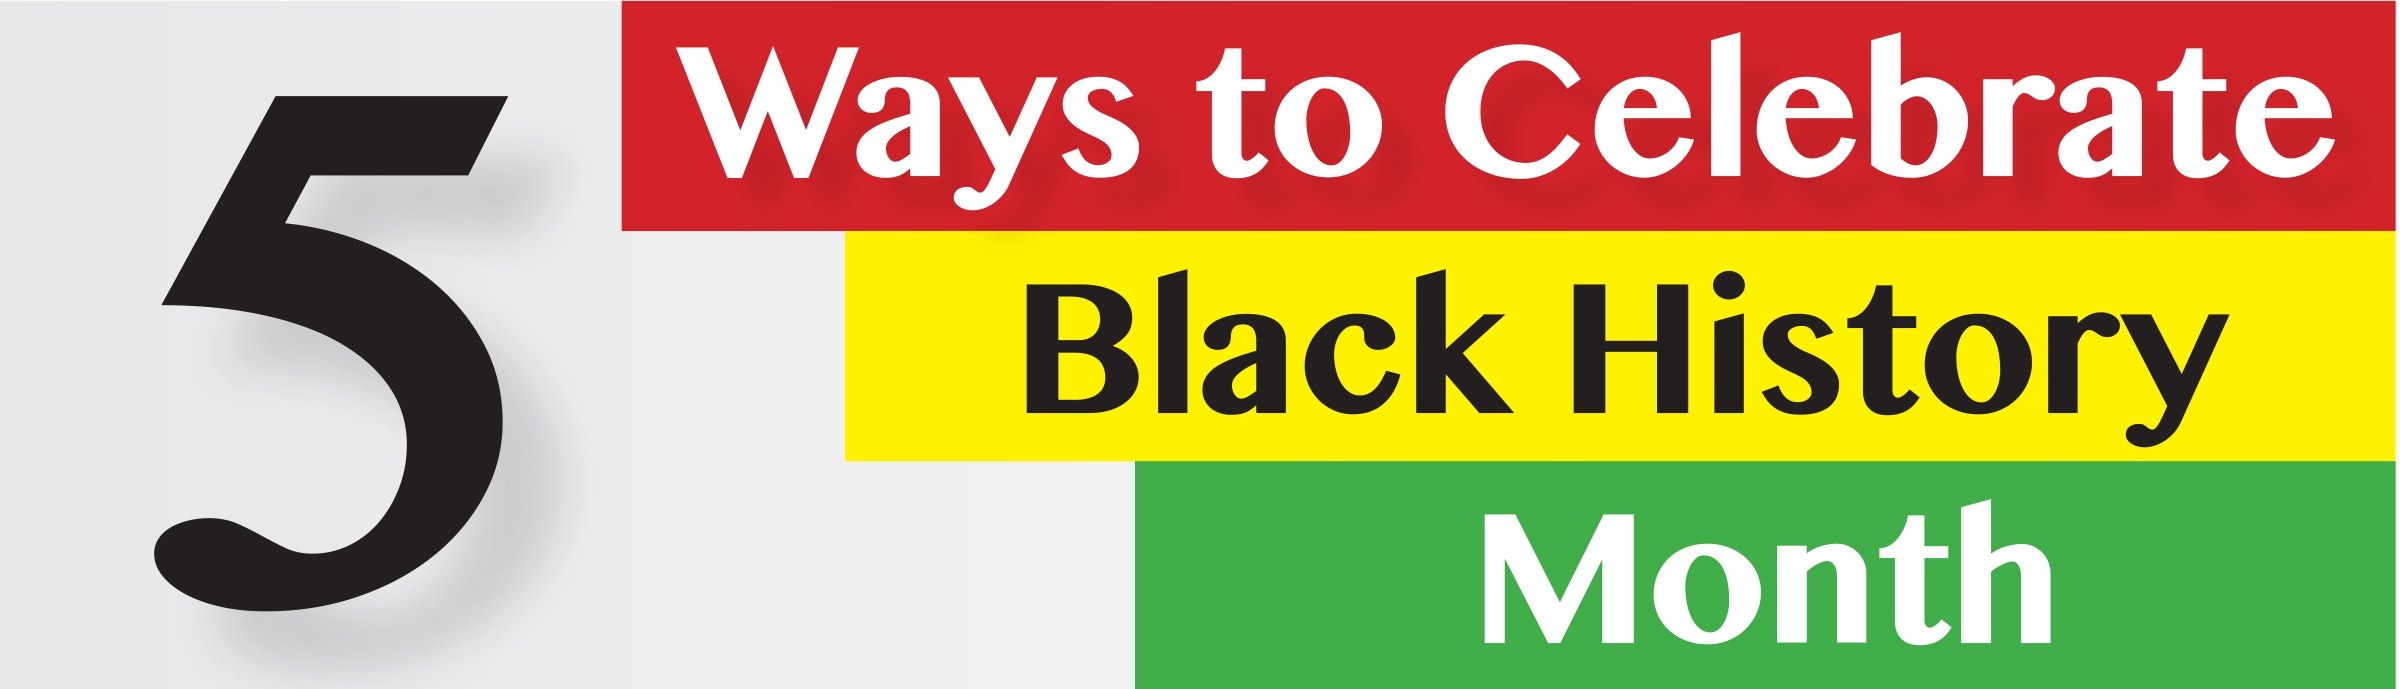 5 ways to celebrate black history month jjc joliet junior college